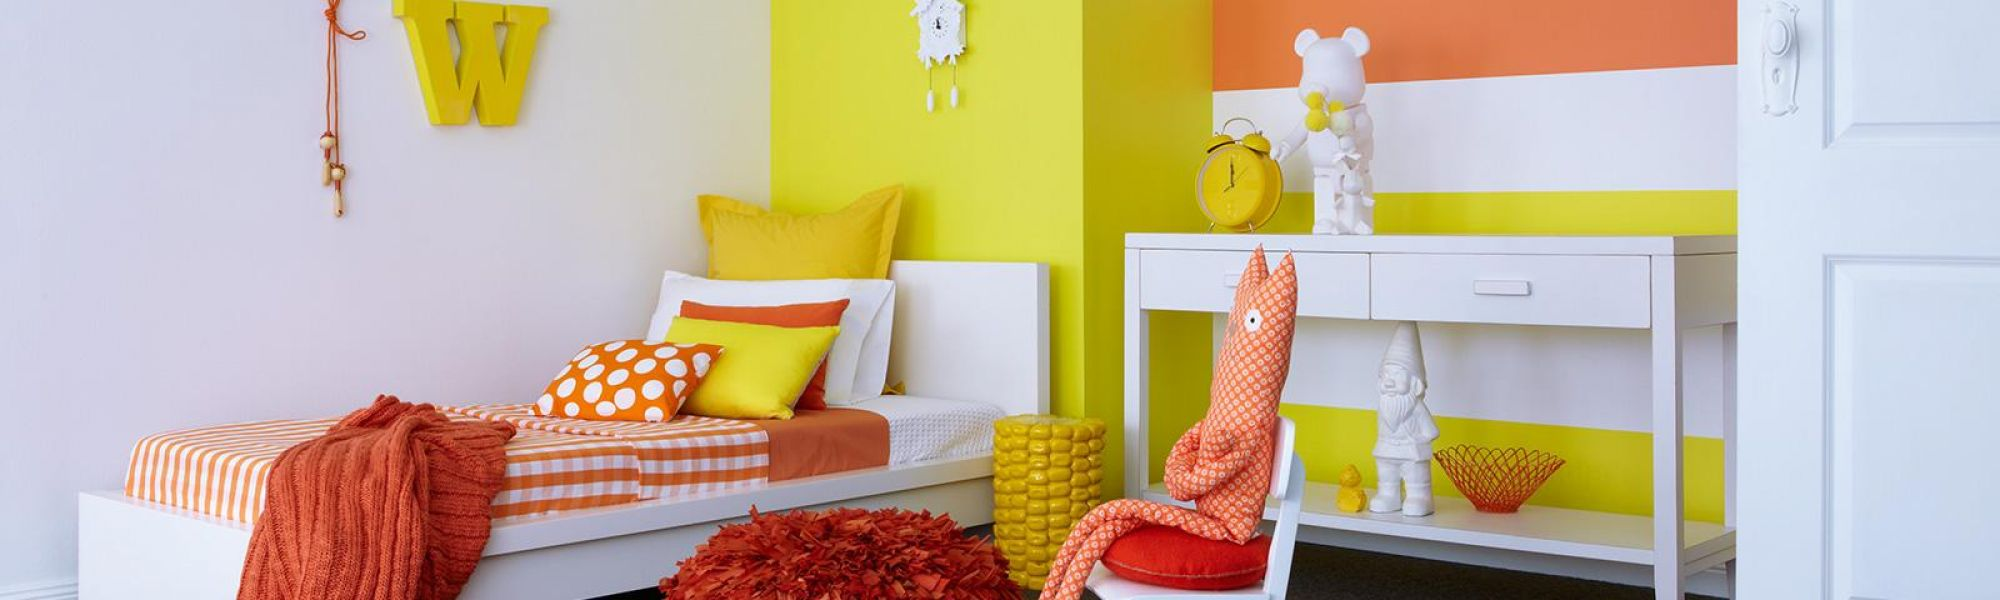 Interior & Exterior House Painting Services in Brisbane